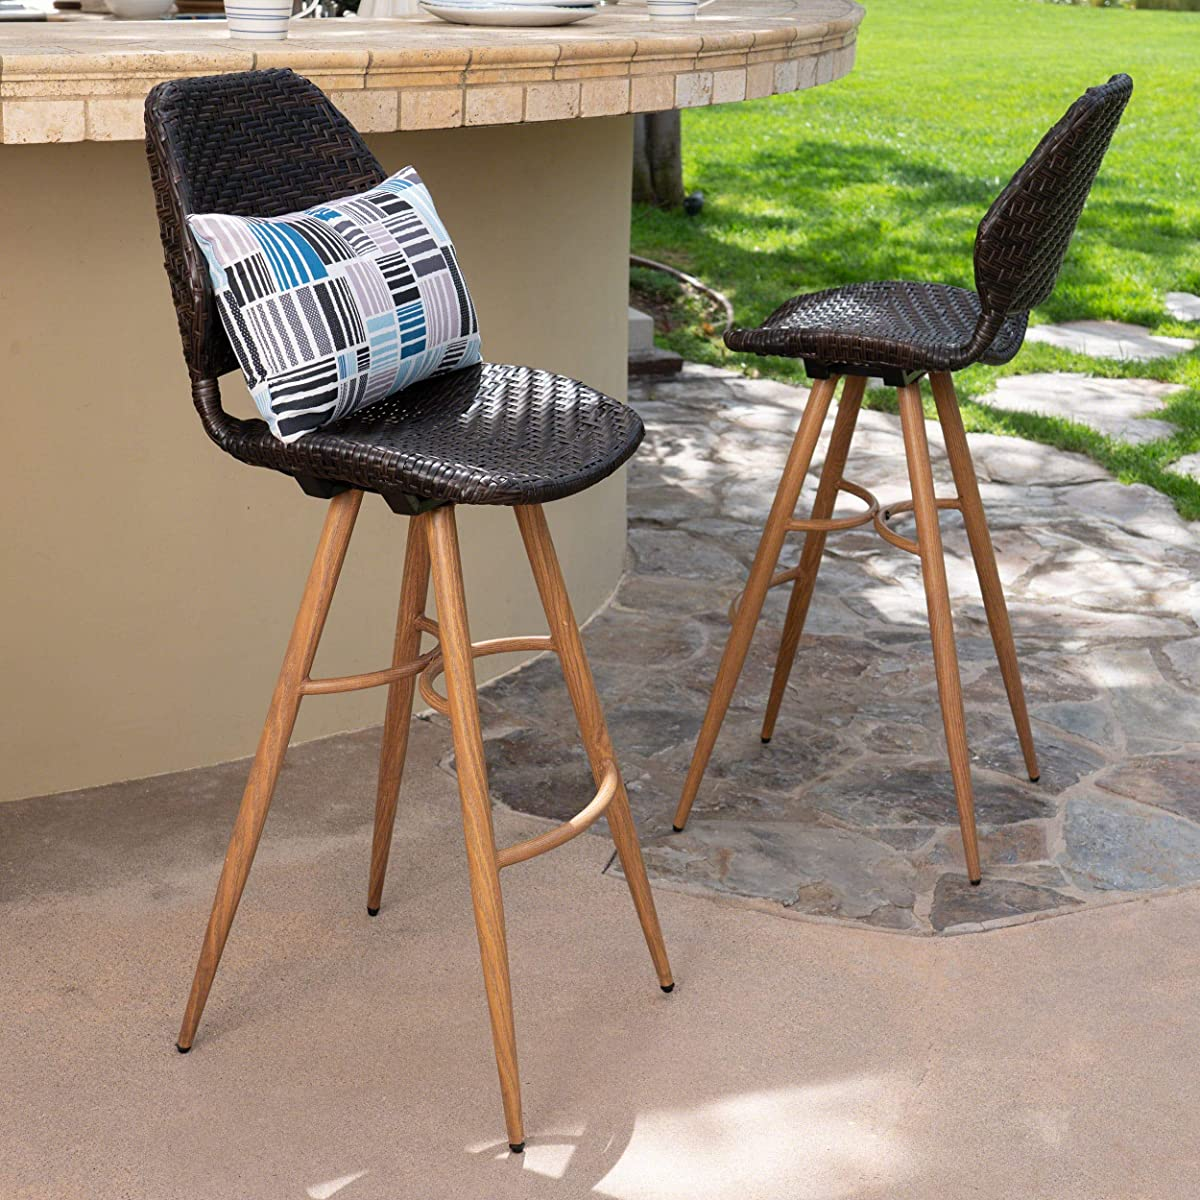 Amaya Outdoor Multibrown Wicker Barstools with Brown Wood Finish Metal Legs (Set of 2)